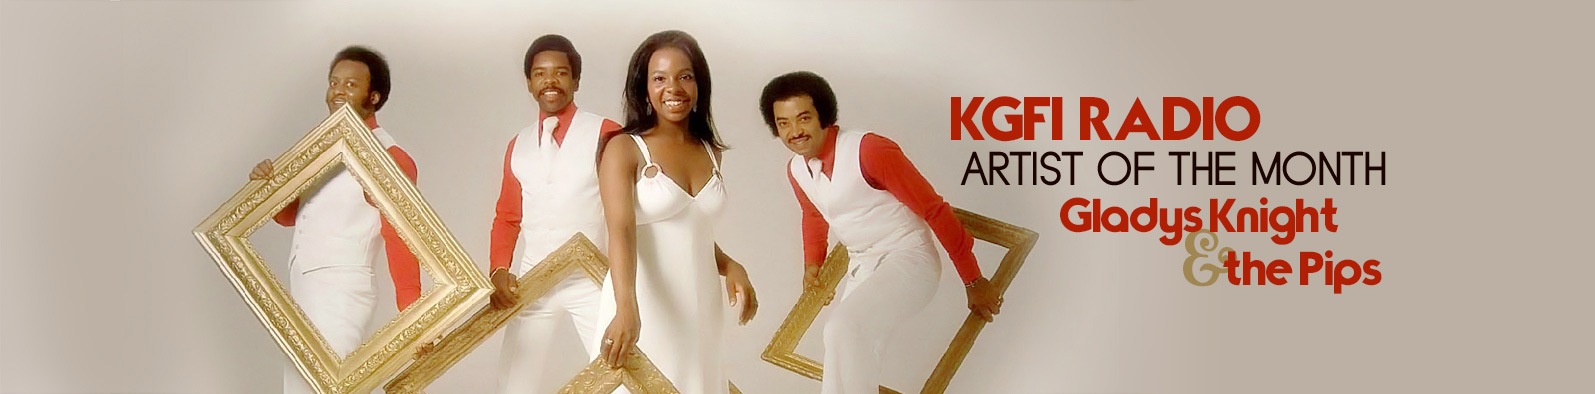 artist of the month gladys knight the pips